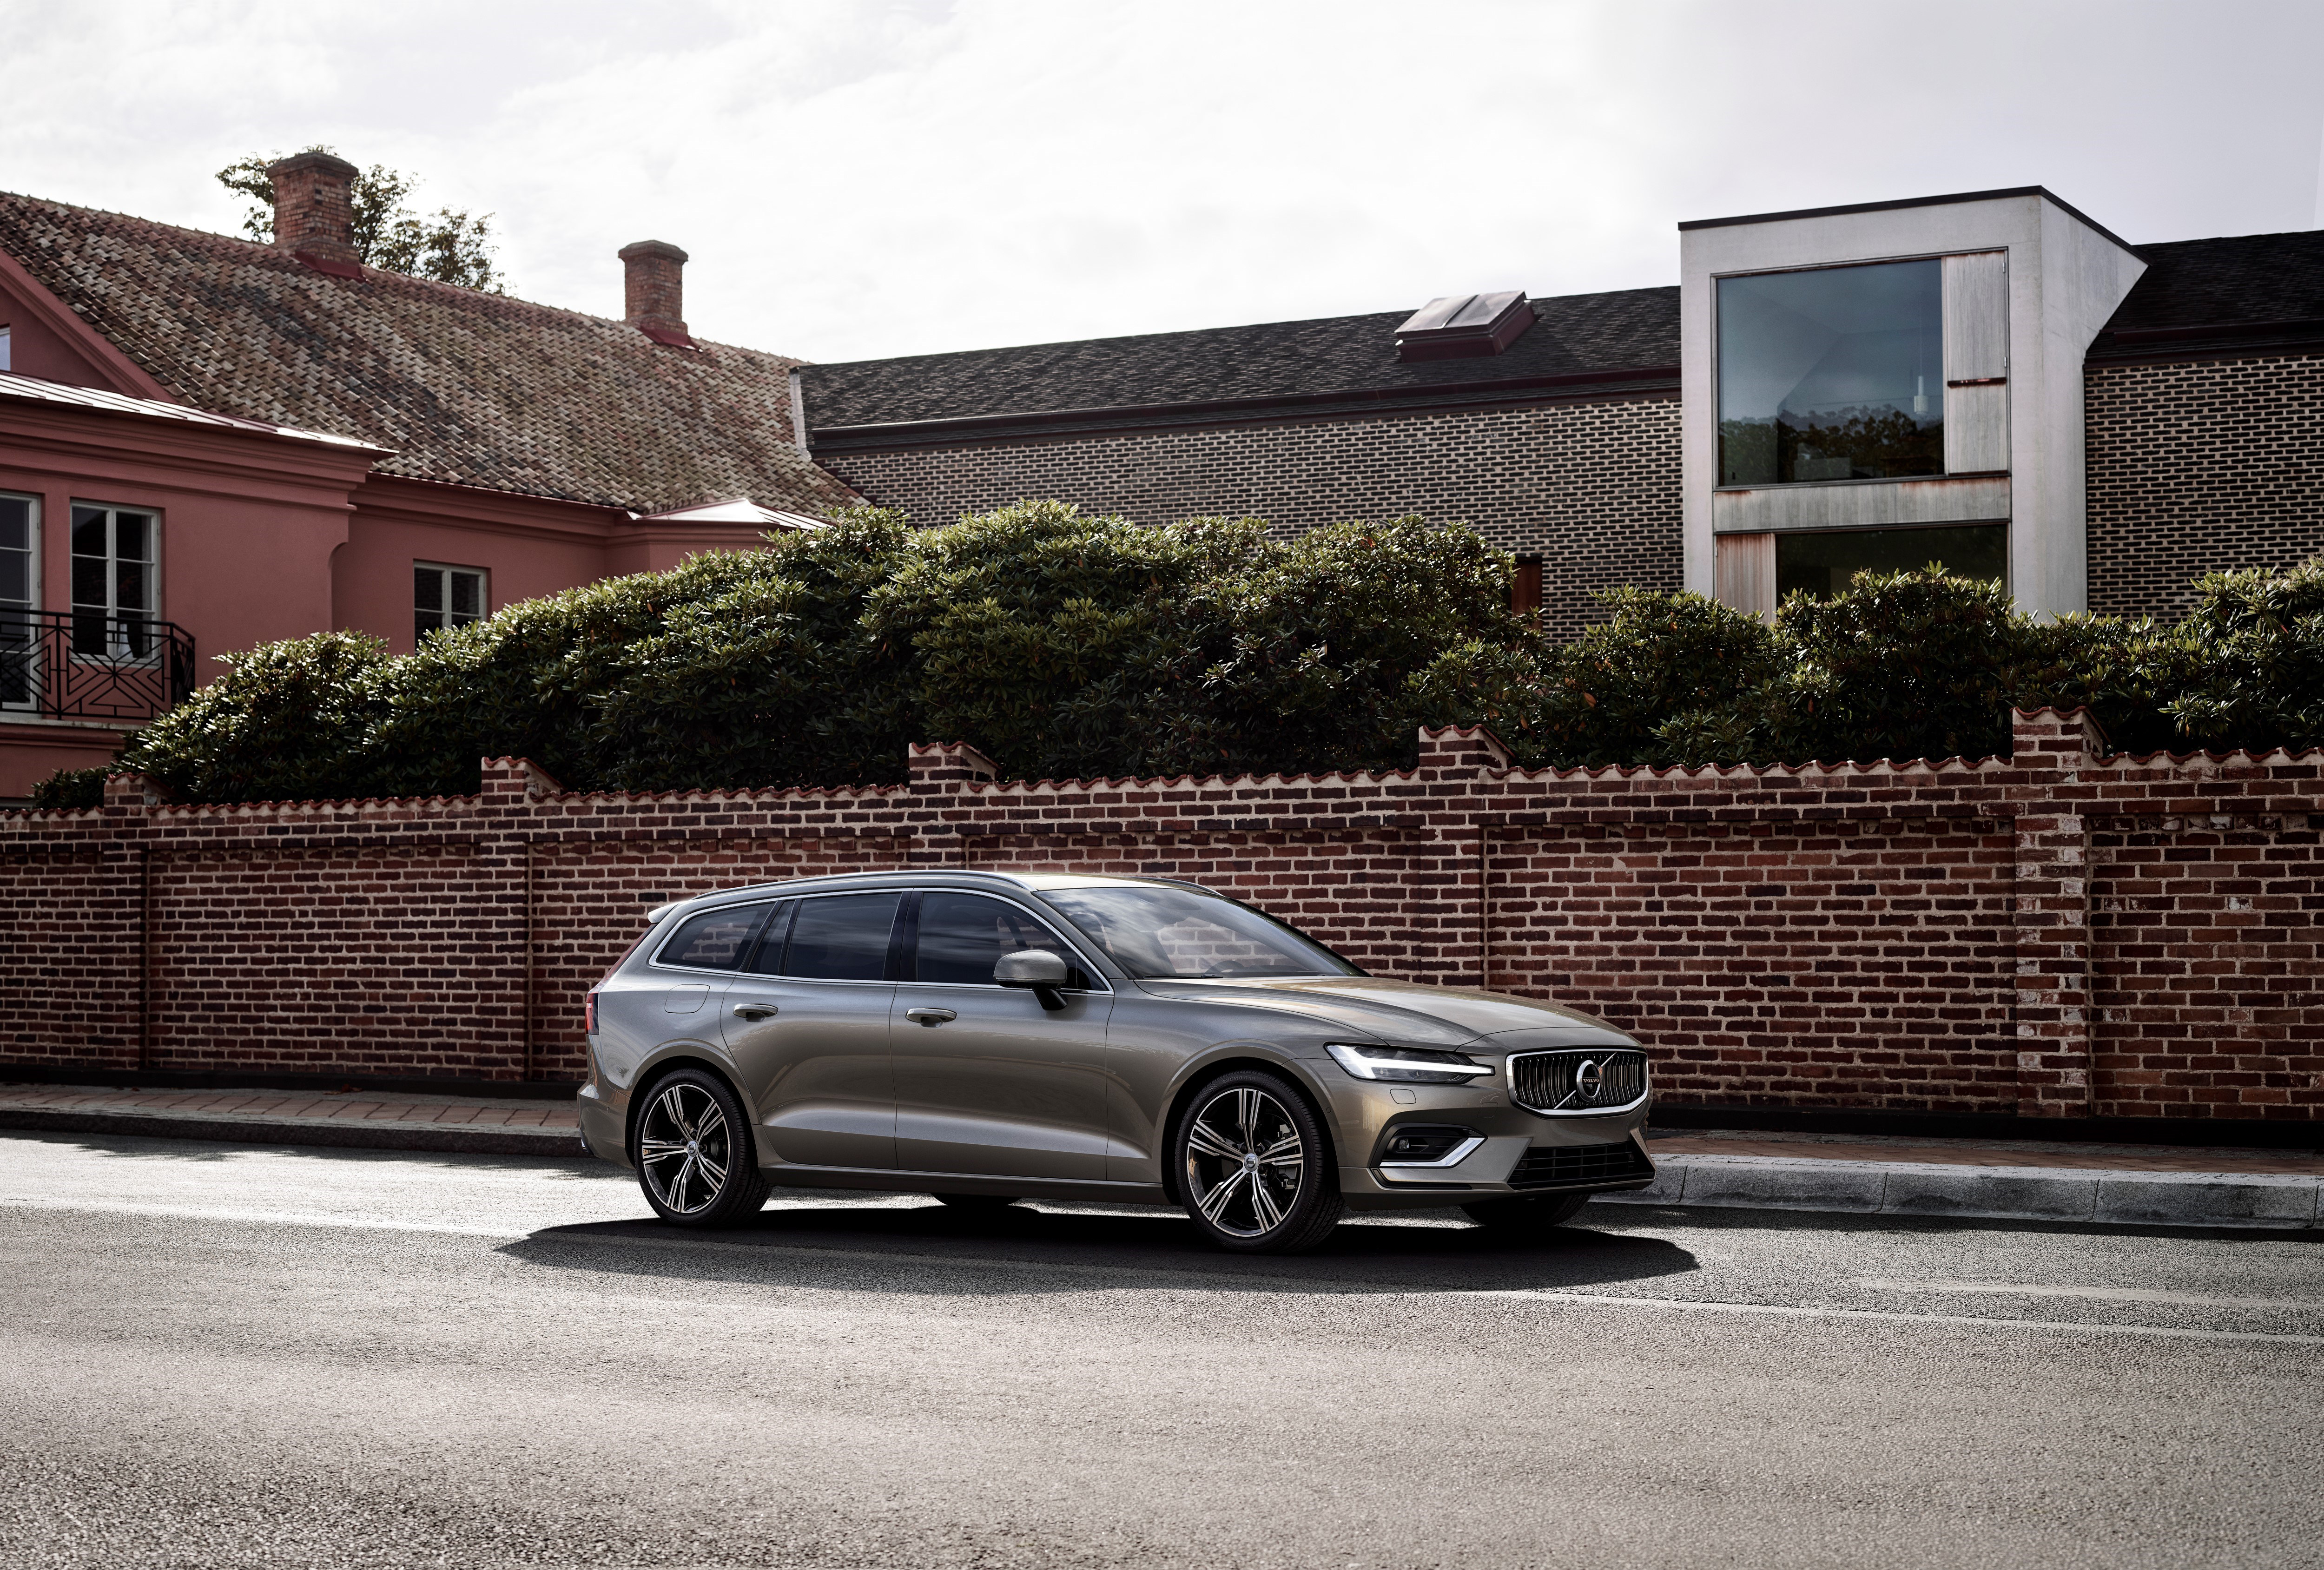 2019 V60 T6 Twin Engine AWD Momentum